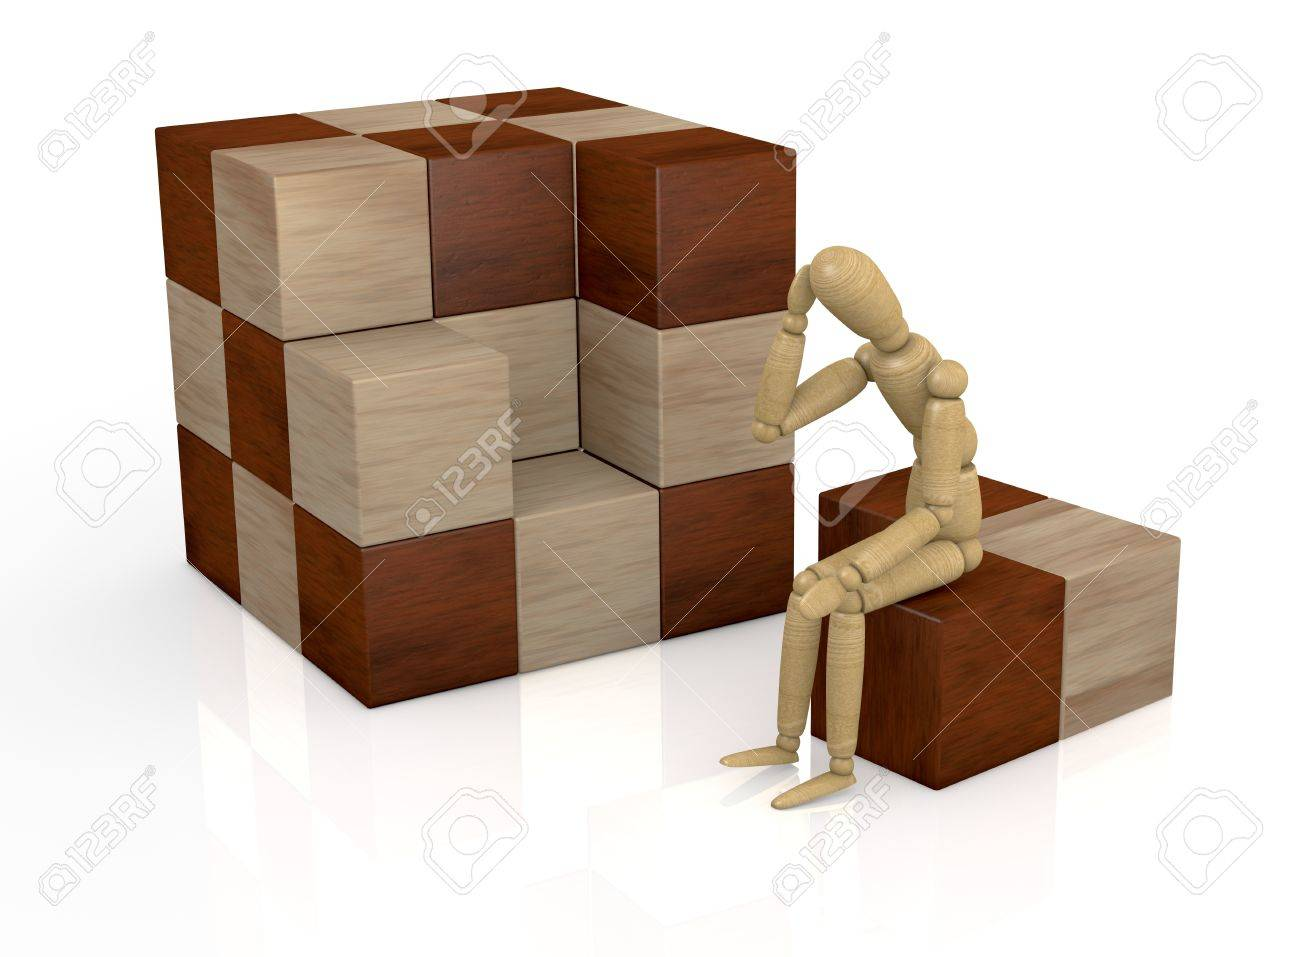 one wooden dummy that thinks how to solve a cube puzzle (3d render) Stock Photo - 12519673